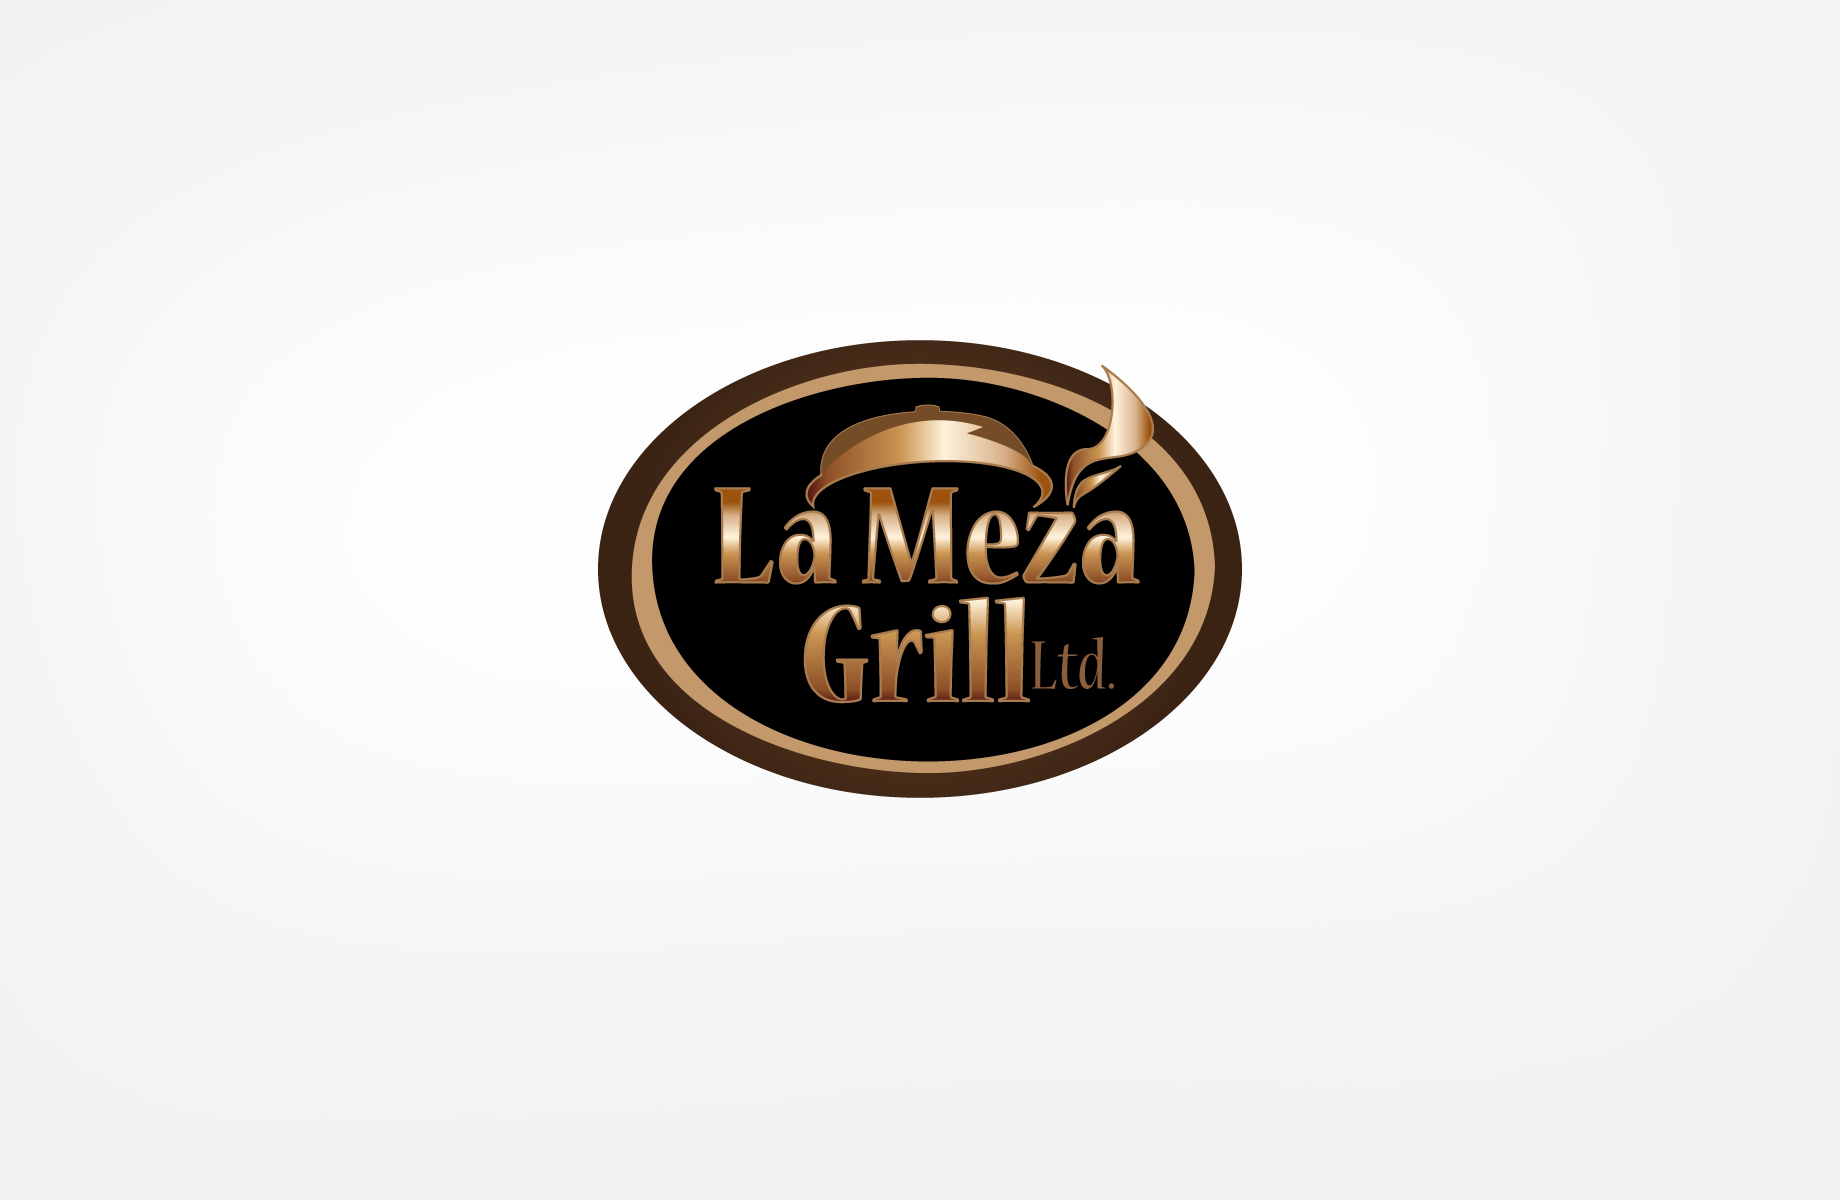 Logo Design by Jan Chua - Entry No. 43 in the Logo Design Contest Inspiring Logo Design for La Meza Grill Ltd..